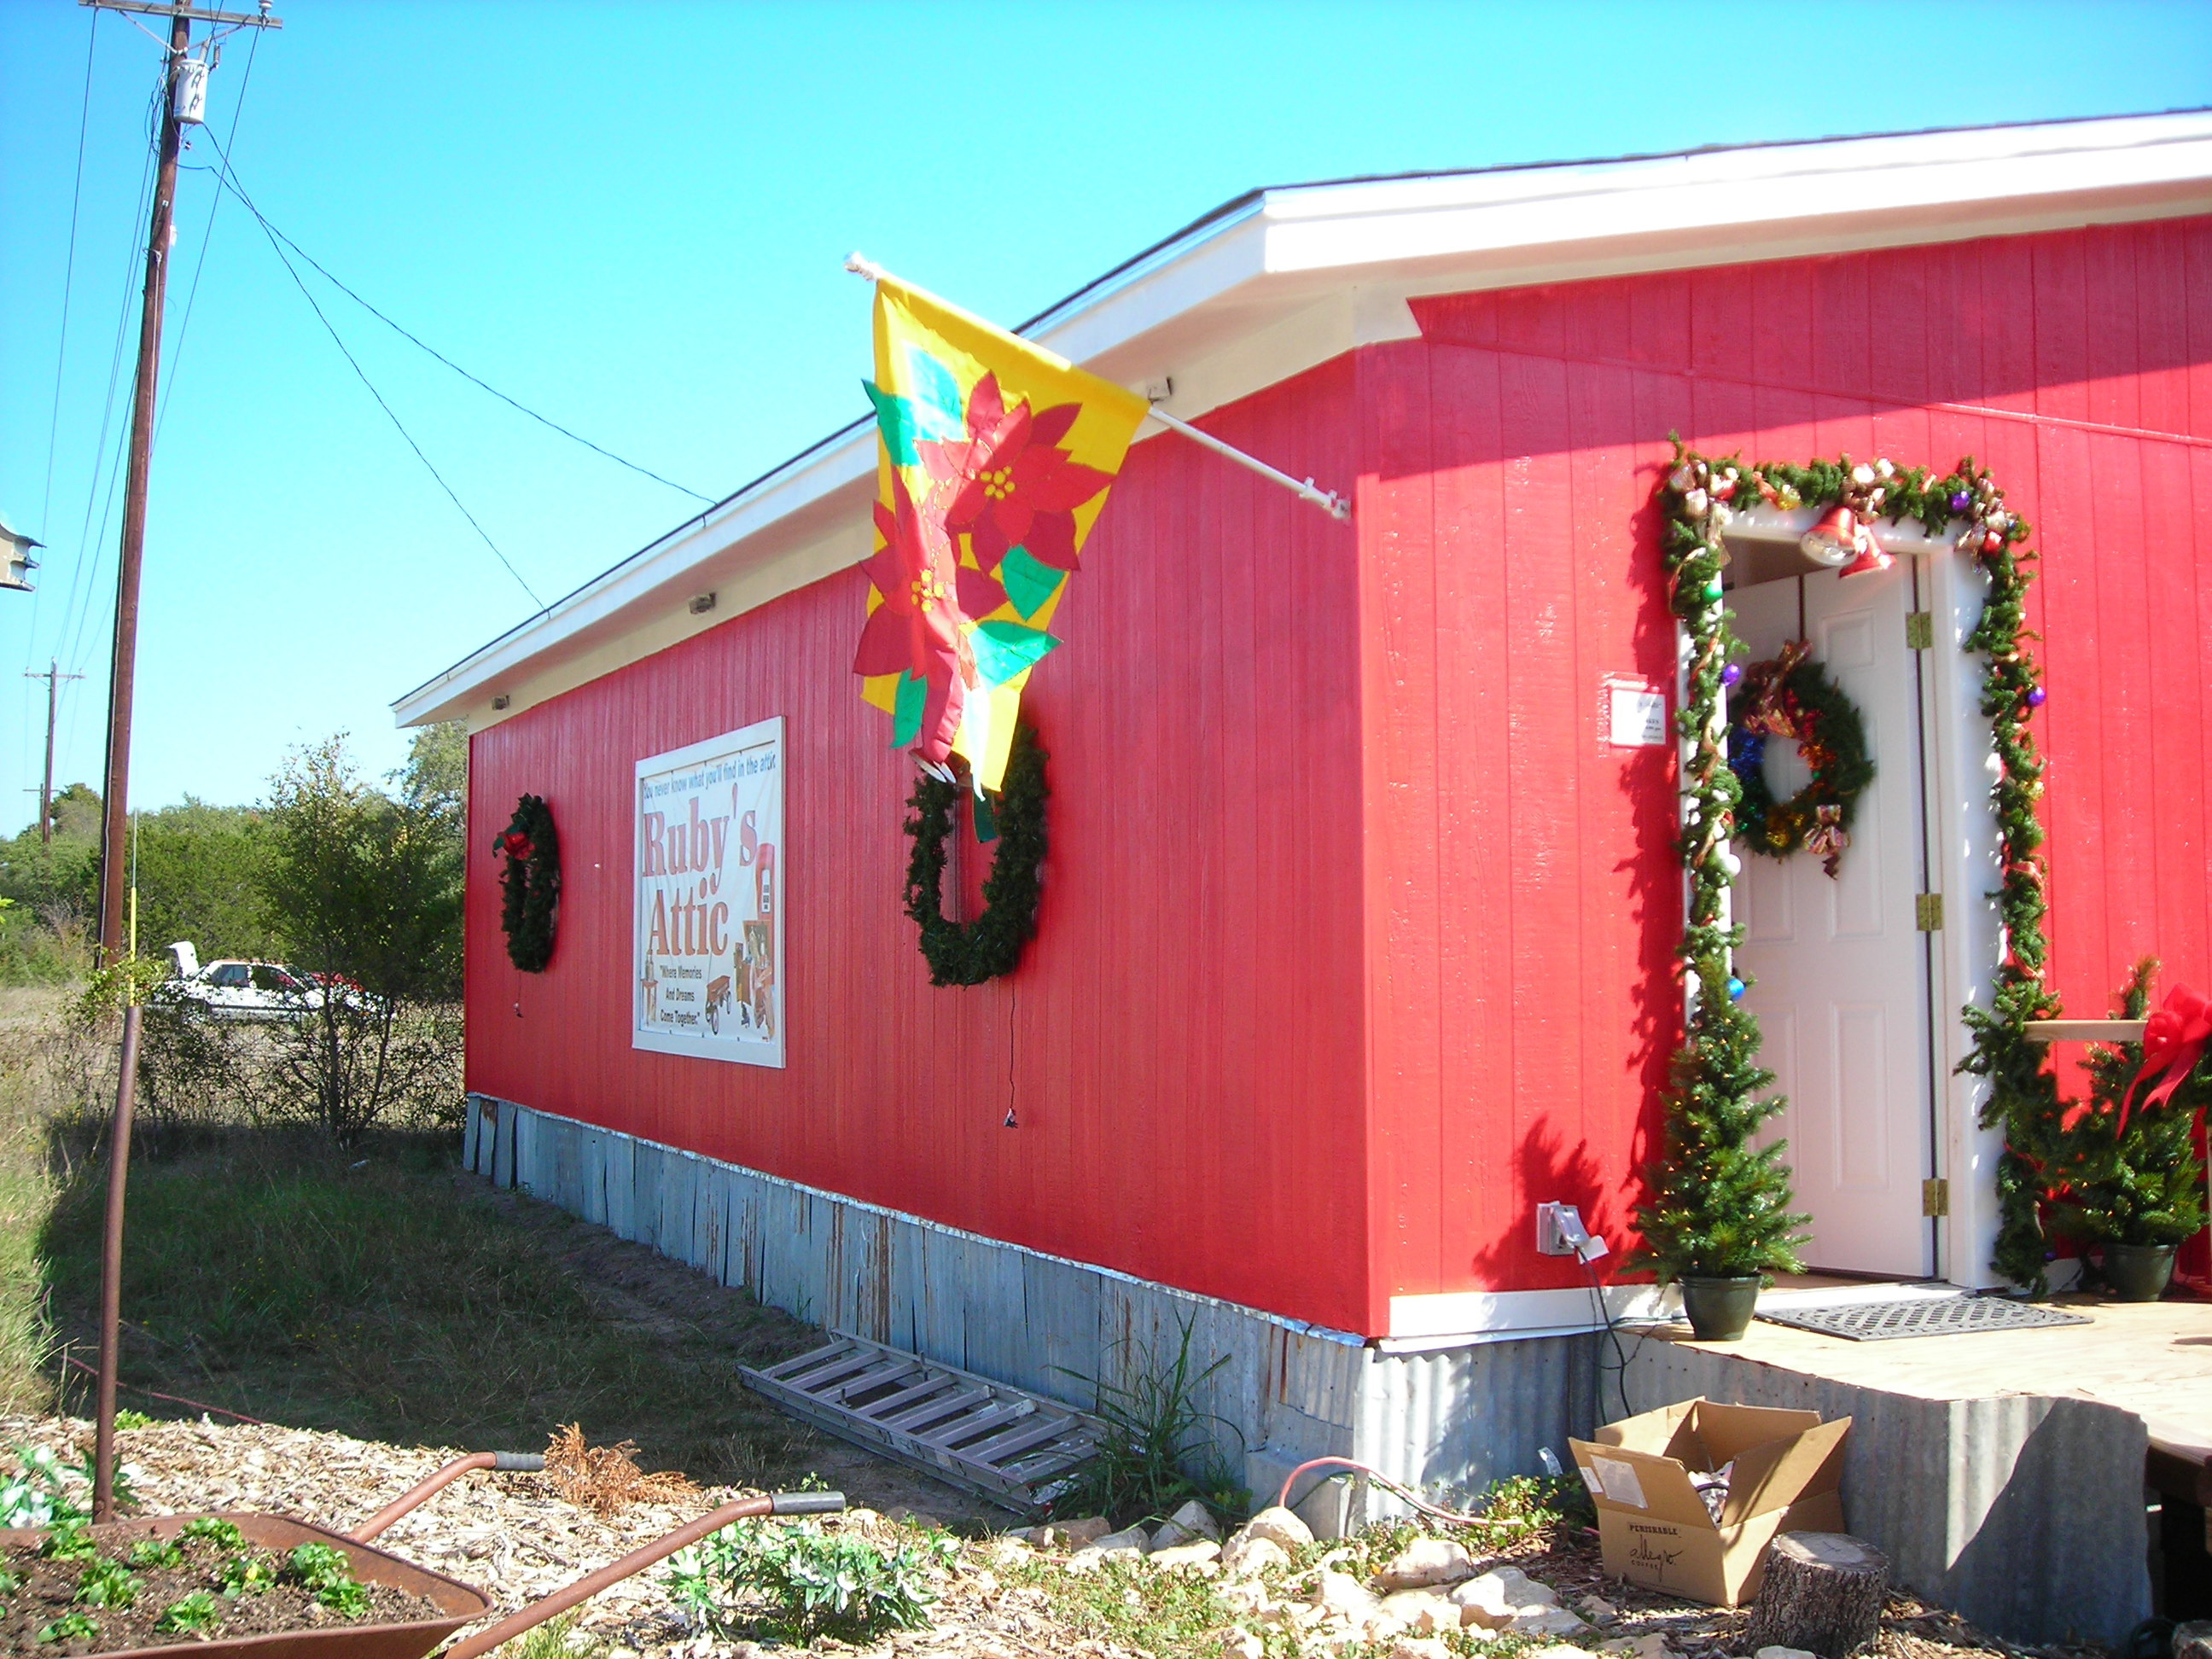 one of our first stops was ruby's attic